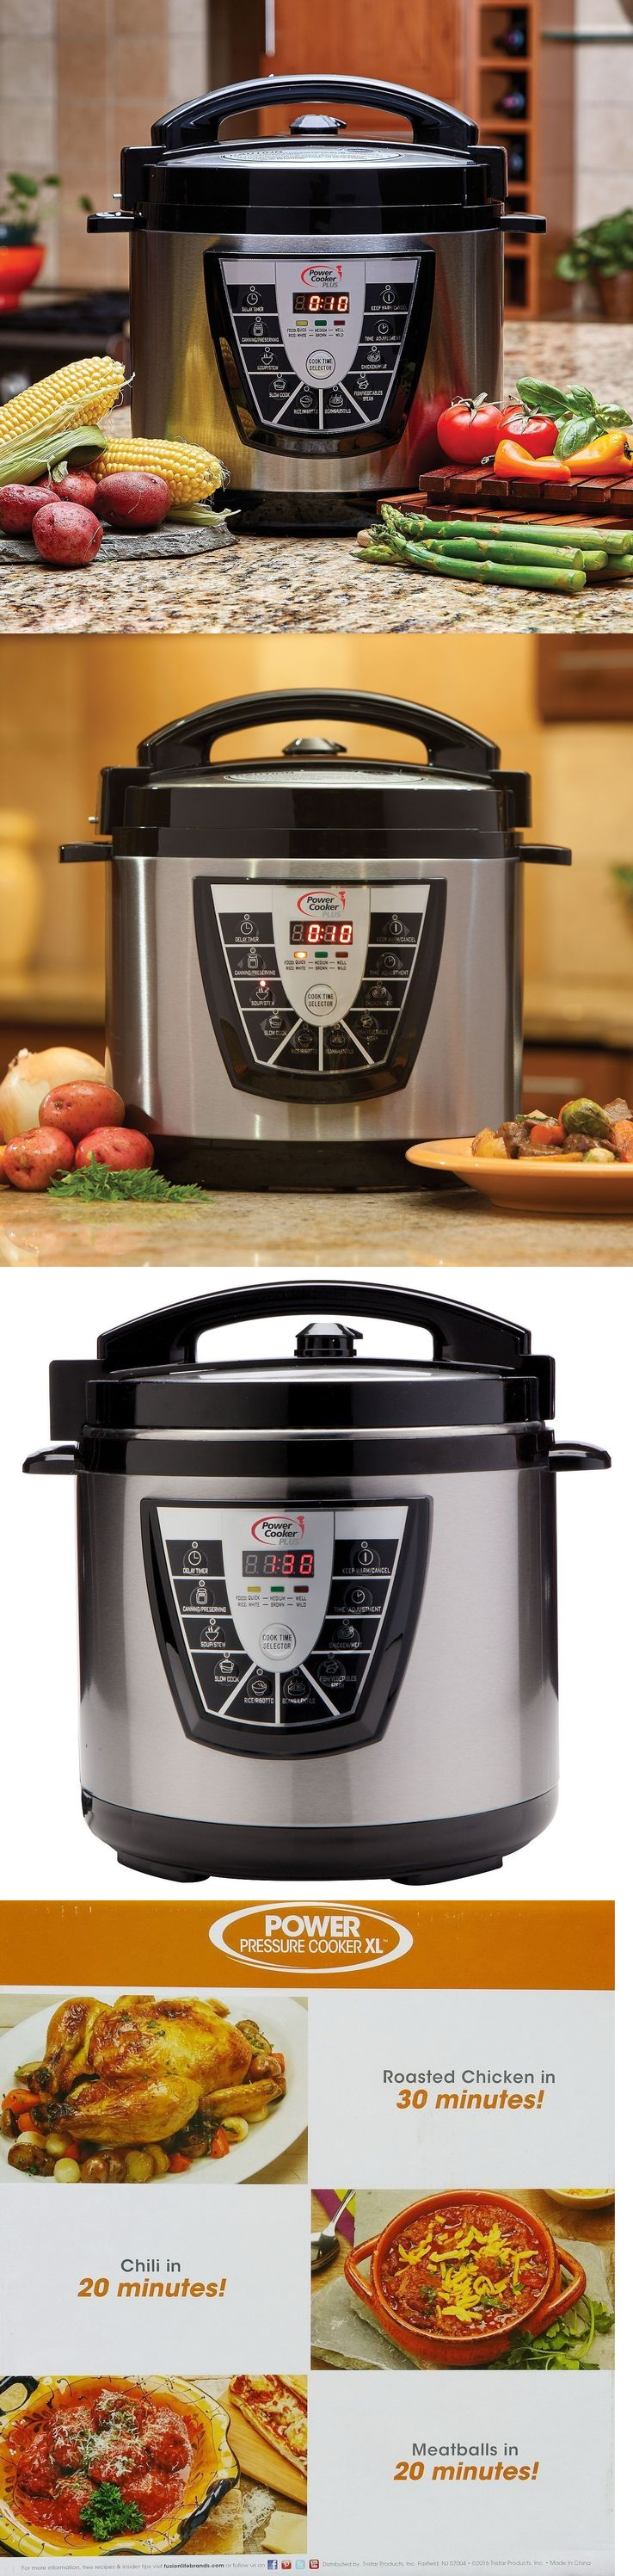 Buy fagor duo 8 quart pressure cooker from bed bath amp beyond - Cookers And Steamers 20672 Digital Power Pressure Cooker Canner Plus Xl Electric 8 Quart Stainless